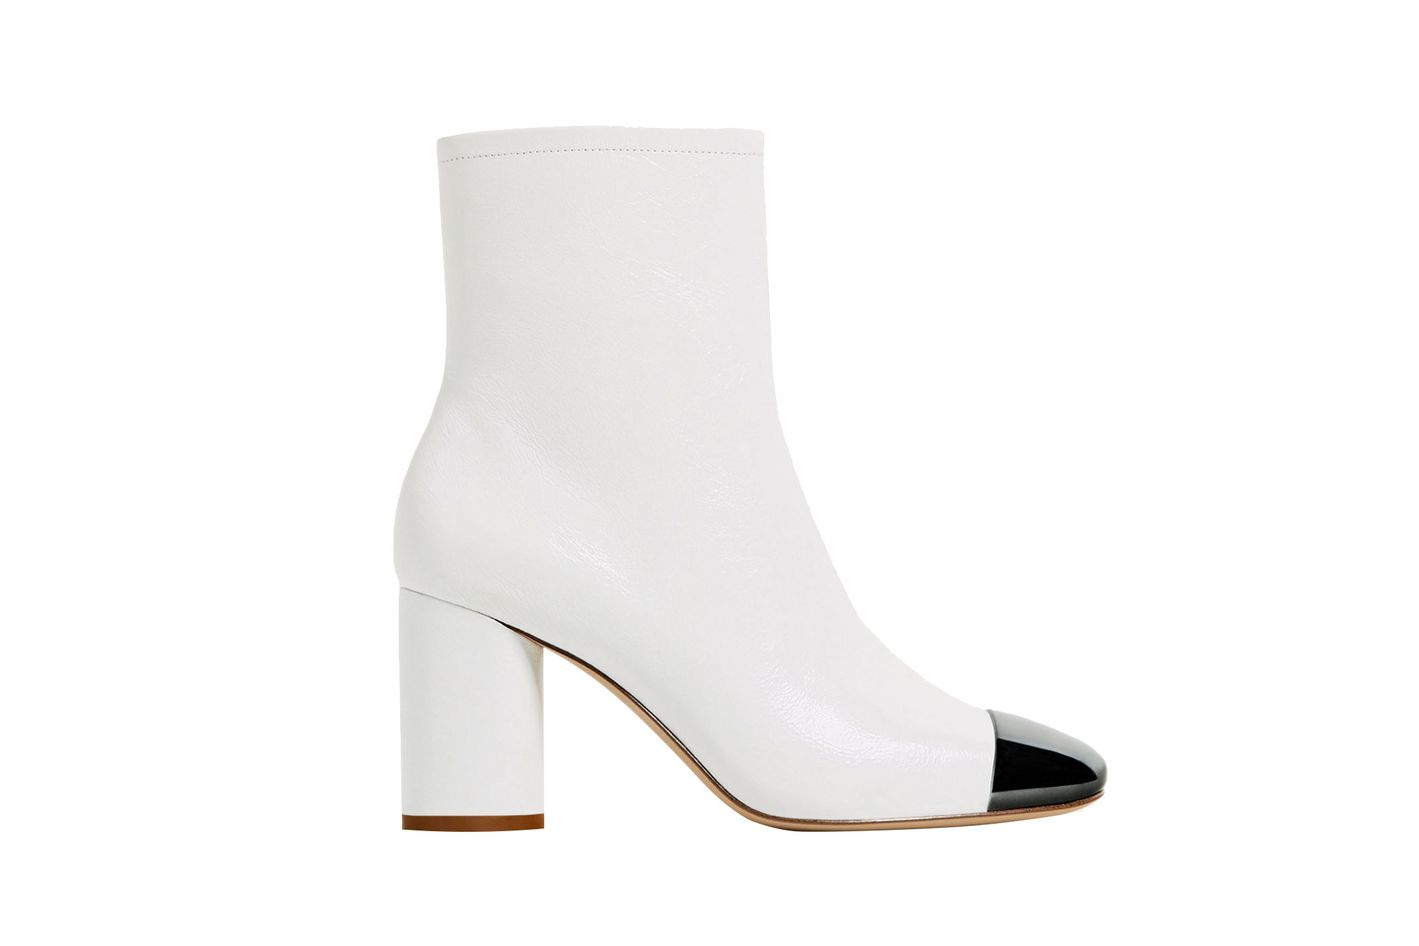 High Heel Leather Boots With Metal Toe